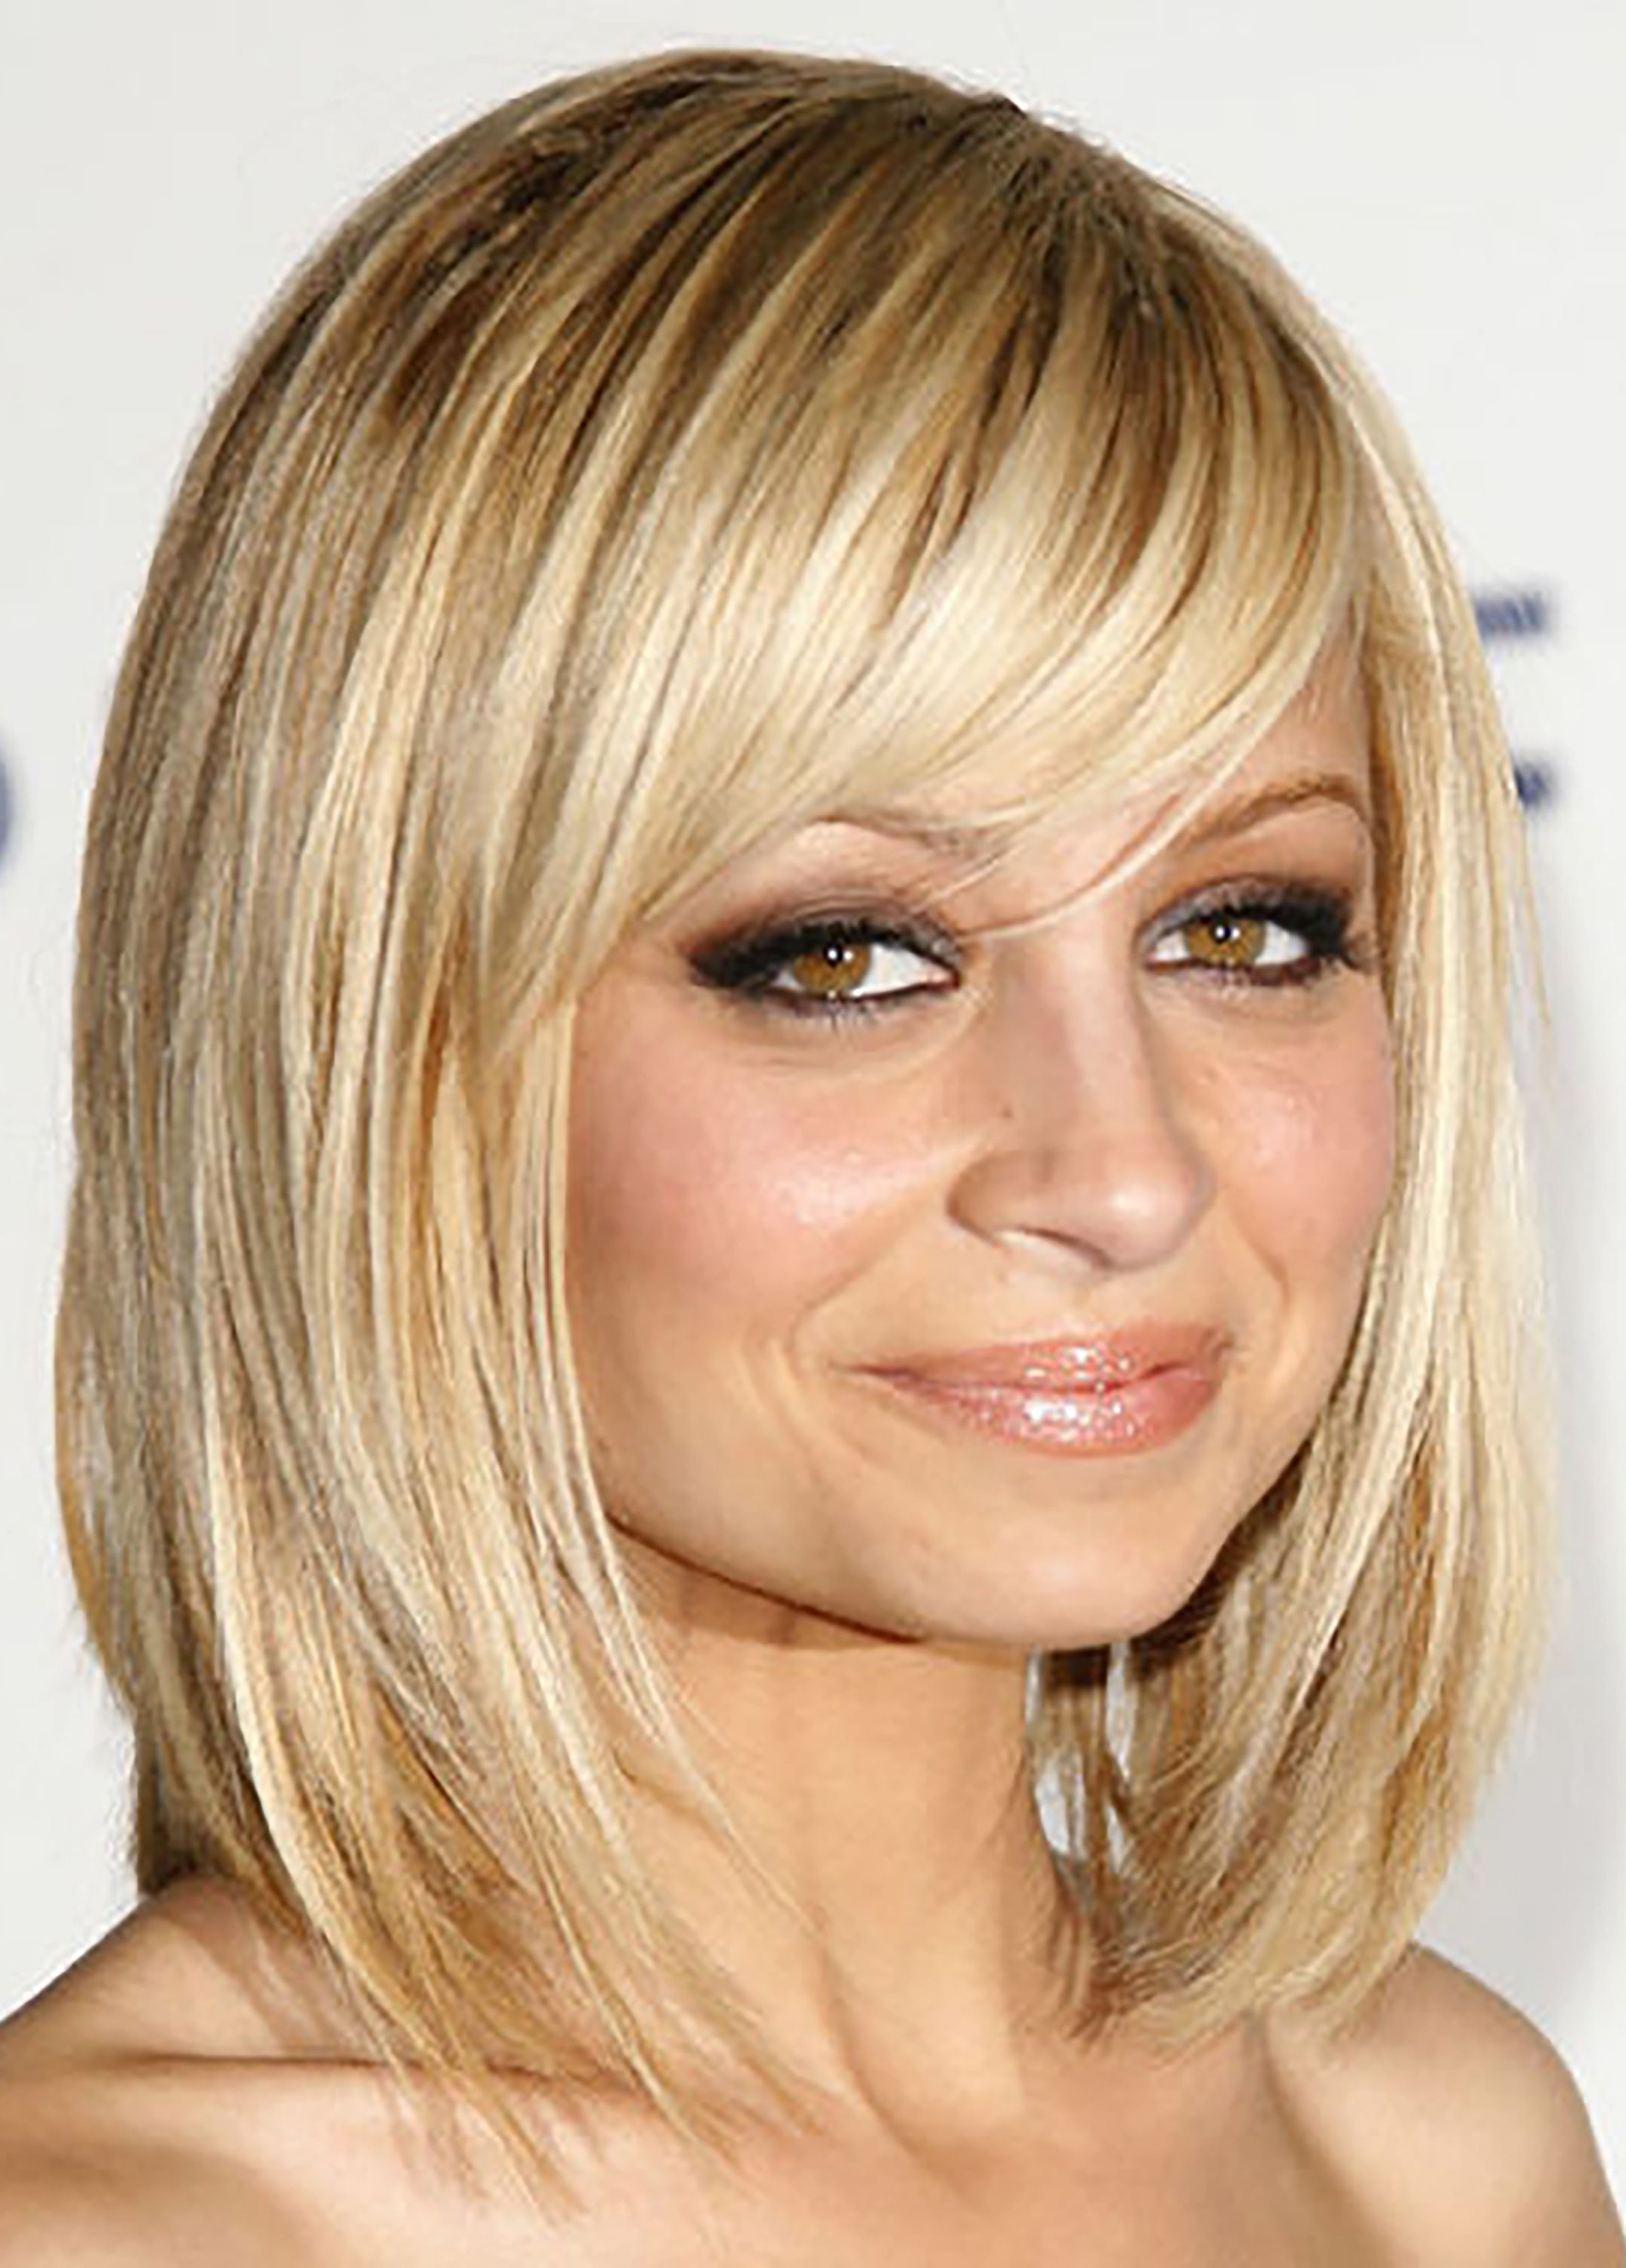 Current Chin Length Bob Hairstyles With Middle Part Regarding 45 Cute Short Haircuts For Women 2019 – Short Celebrity (View 11 of 20)